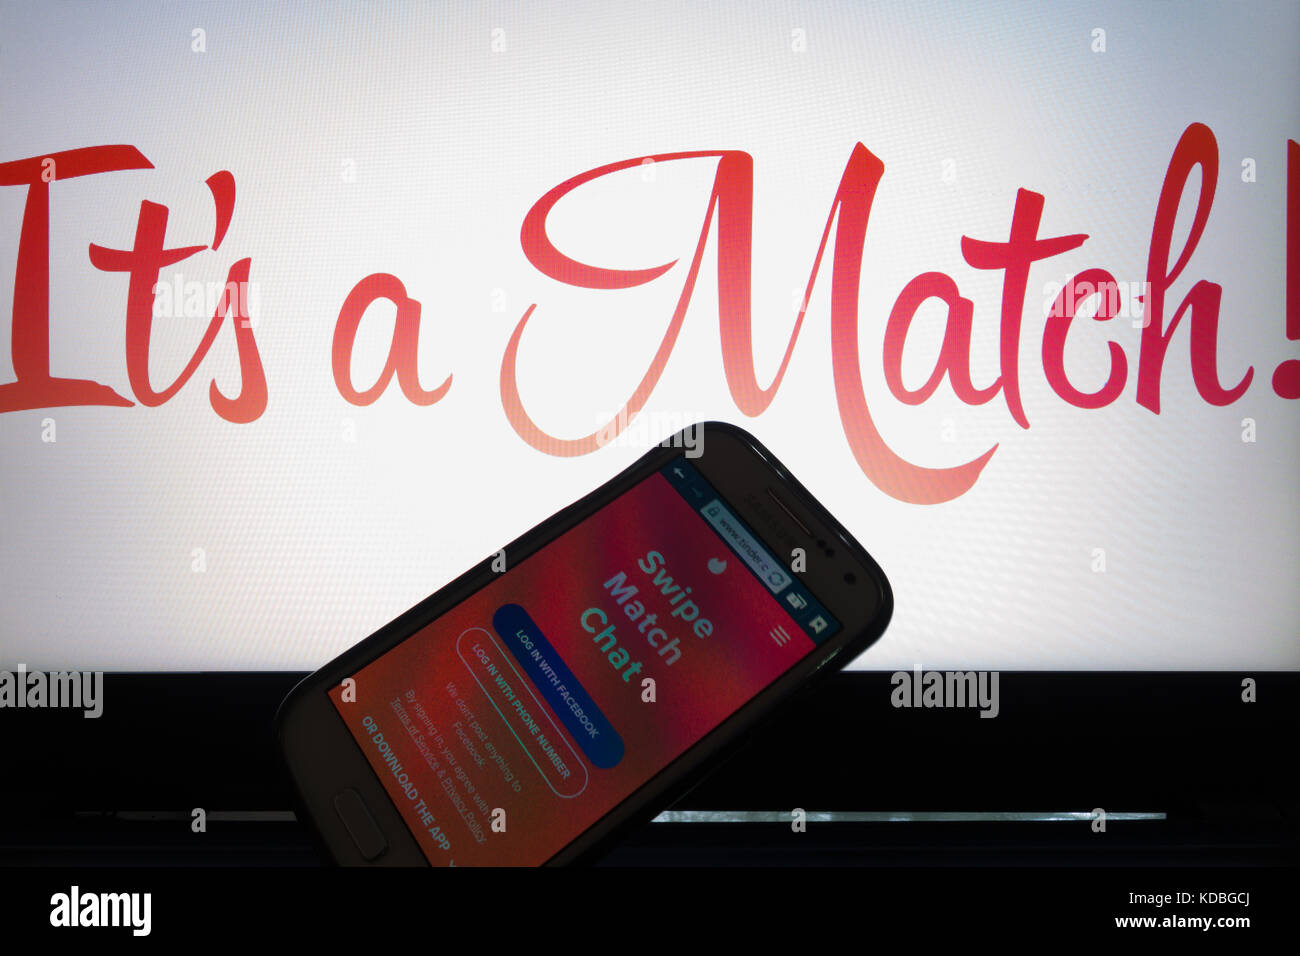 A smartphone display shows Tinder application web login - Stock Image